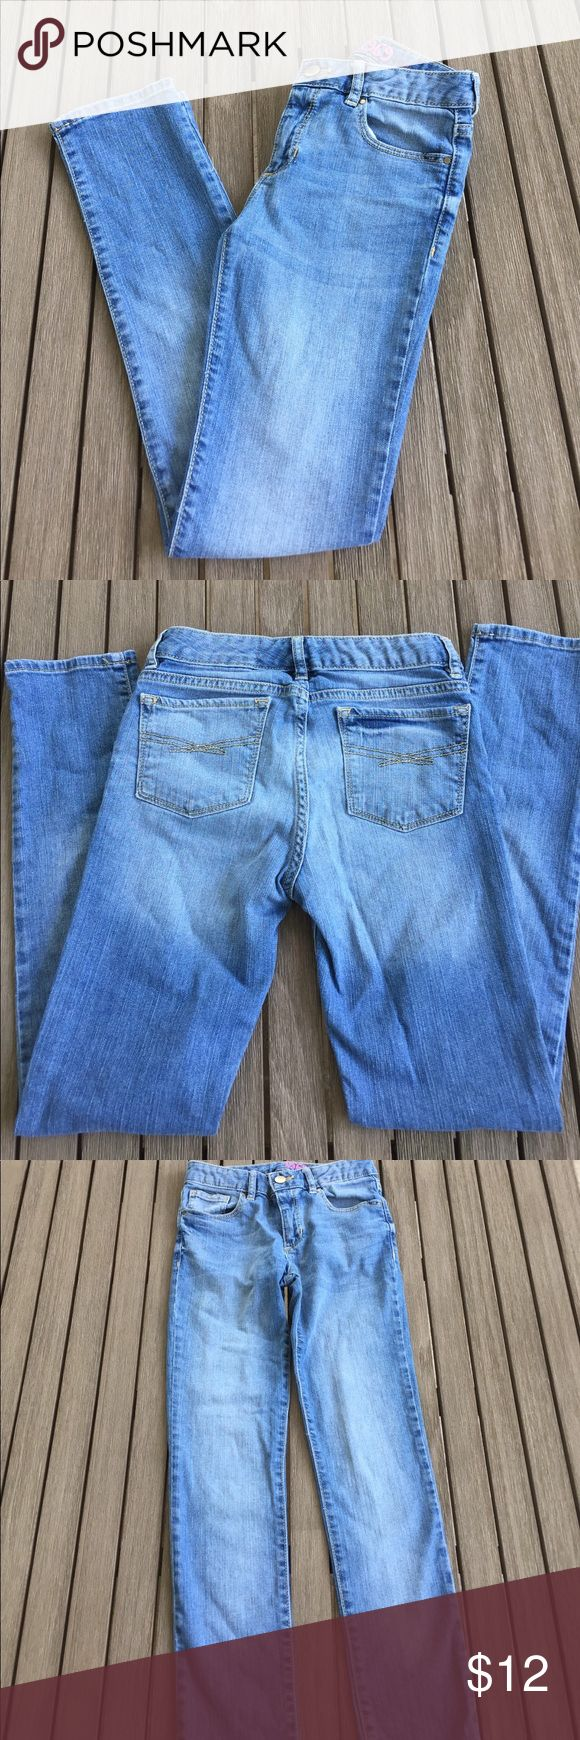 Gapkids Super Skinny Jeans Size 12 Regular Girls Gap Super Skinny Jeans. Good used condition with barely noticeable spots on both knees (see 2 pics). Interior tab adjustable waistband. Great light blue color with no holes or distressing! 99 cotton/ 1 Elastane. GAP Bottoms Jeans